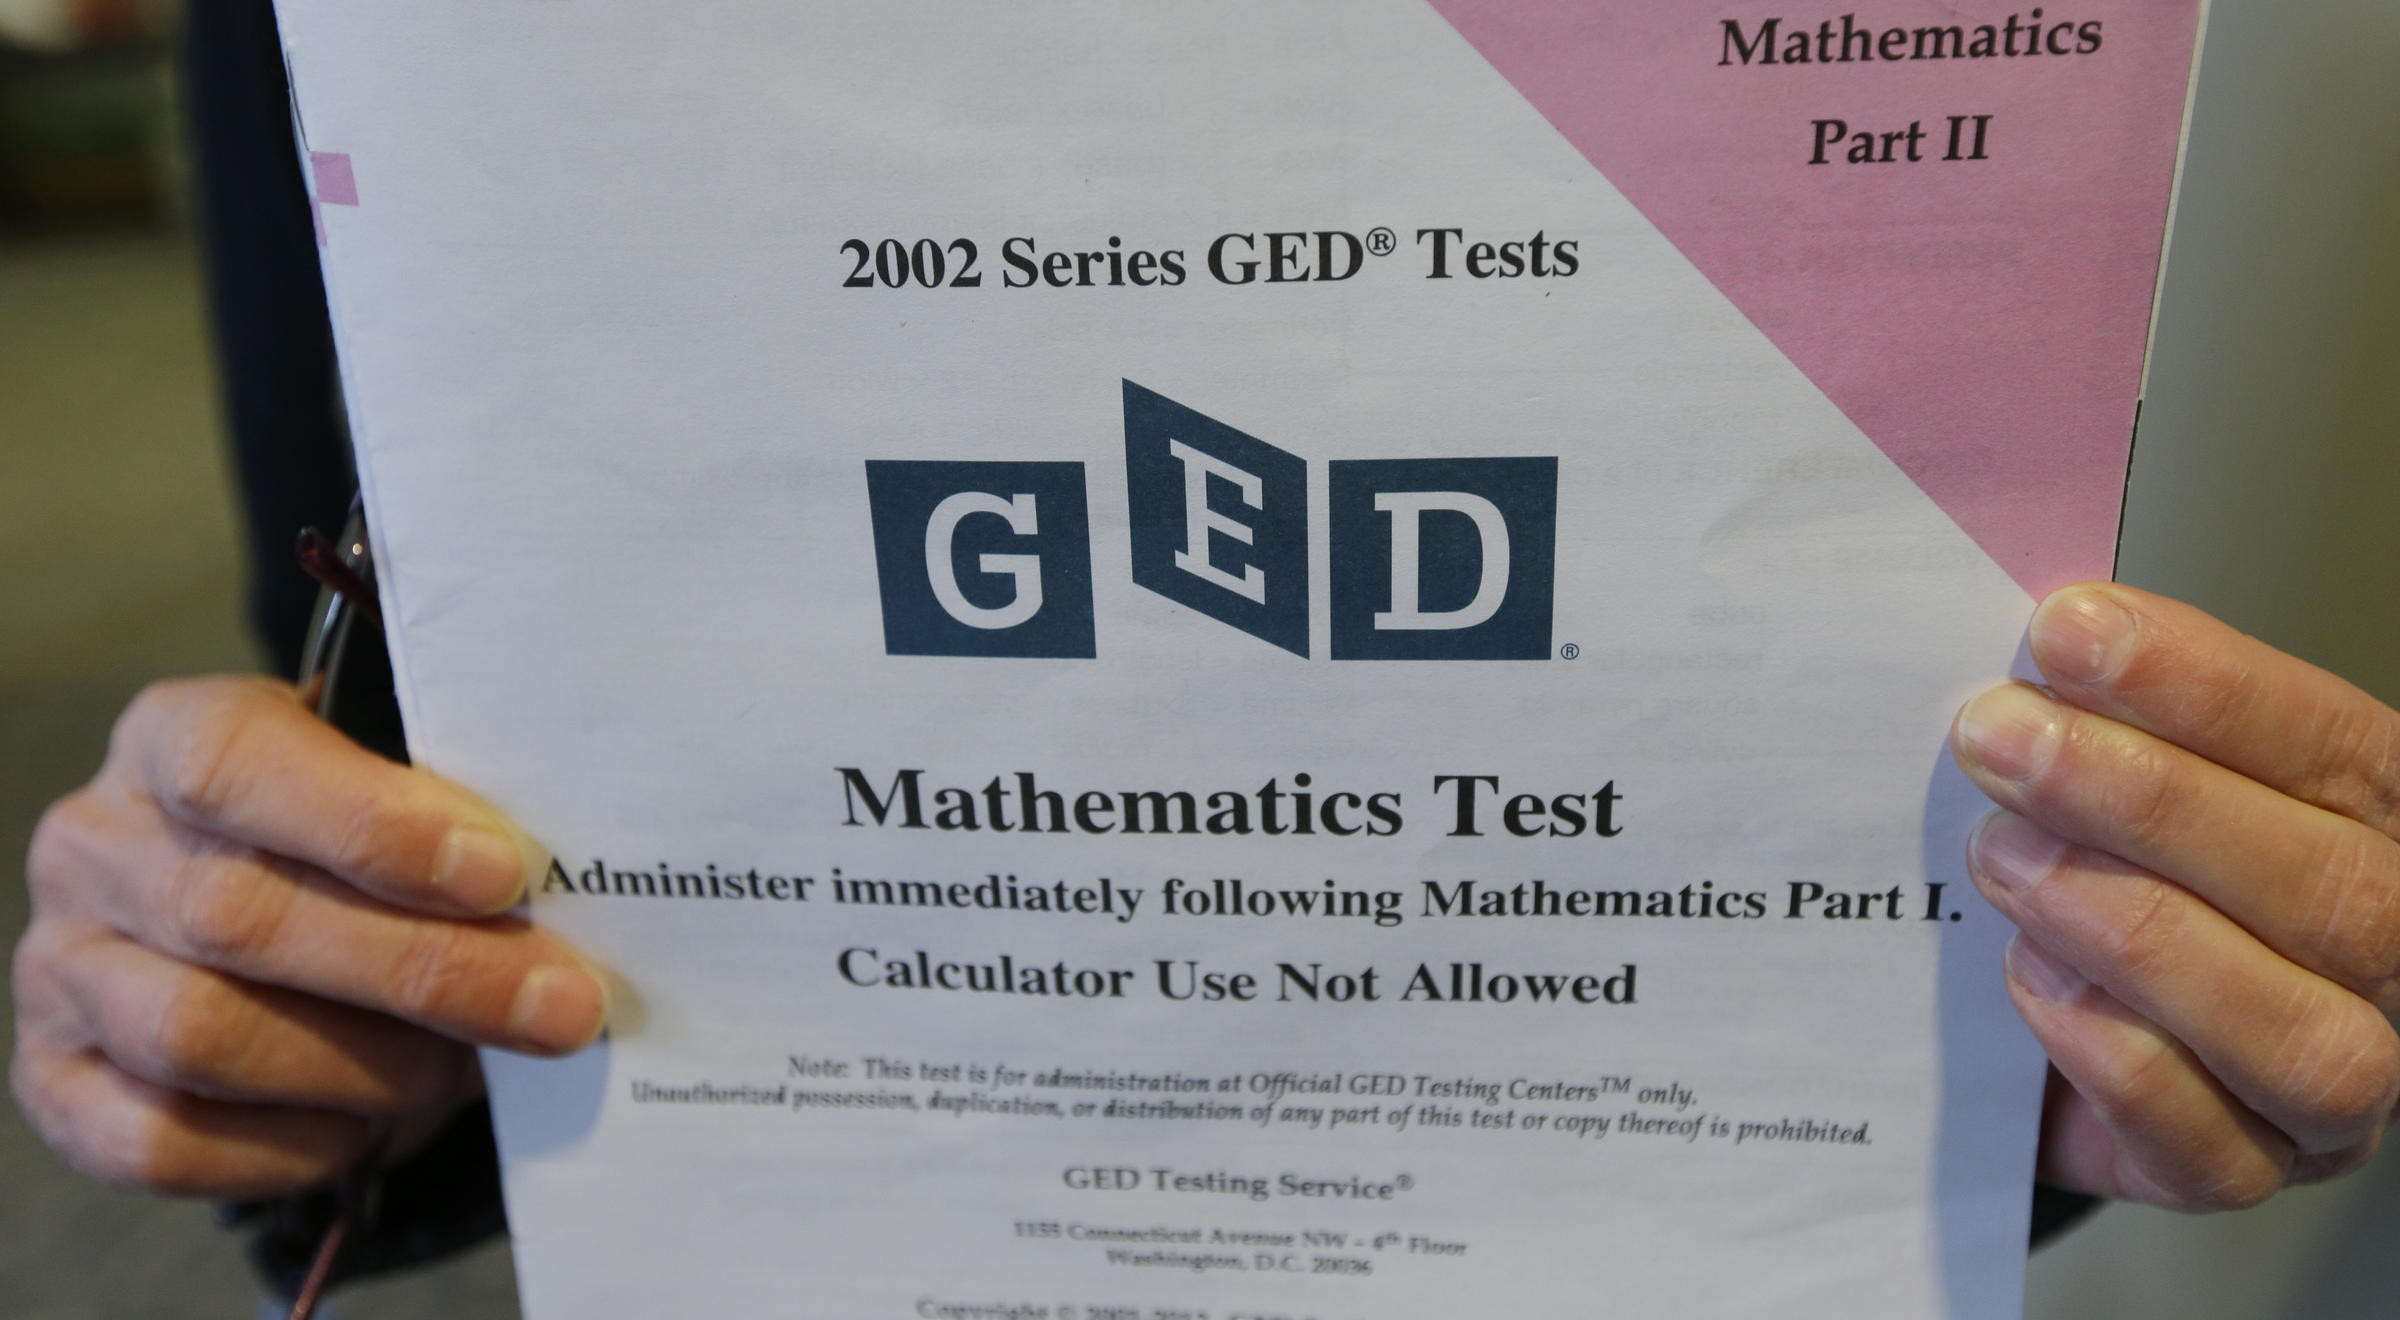 Report Ged Takers Tumble After Update